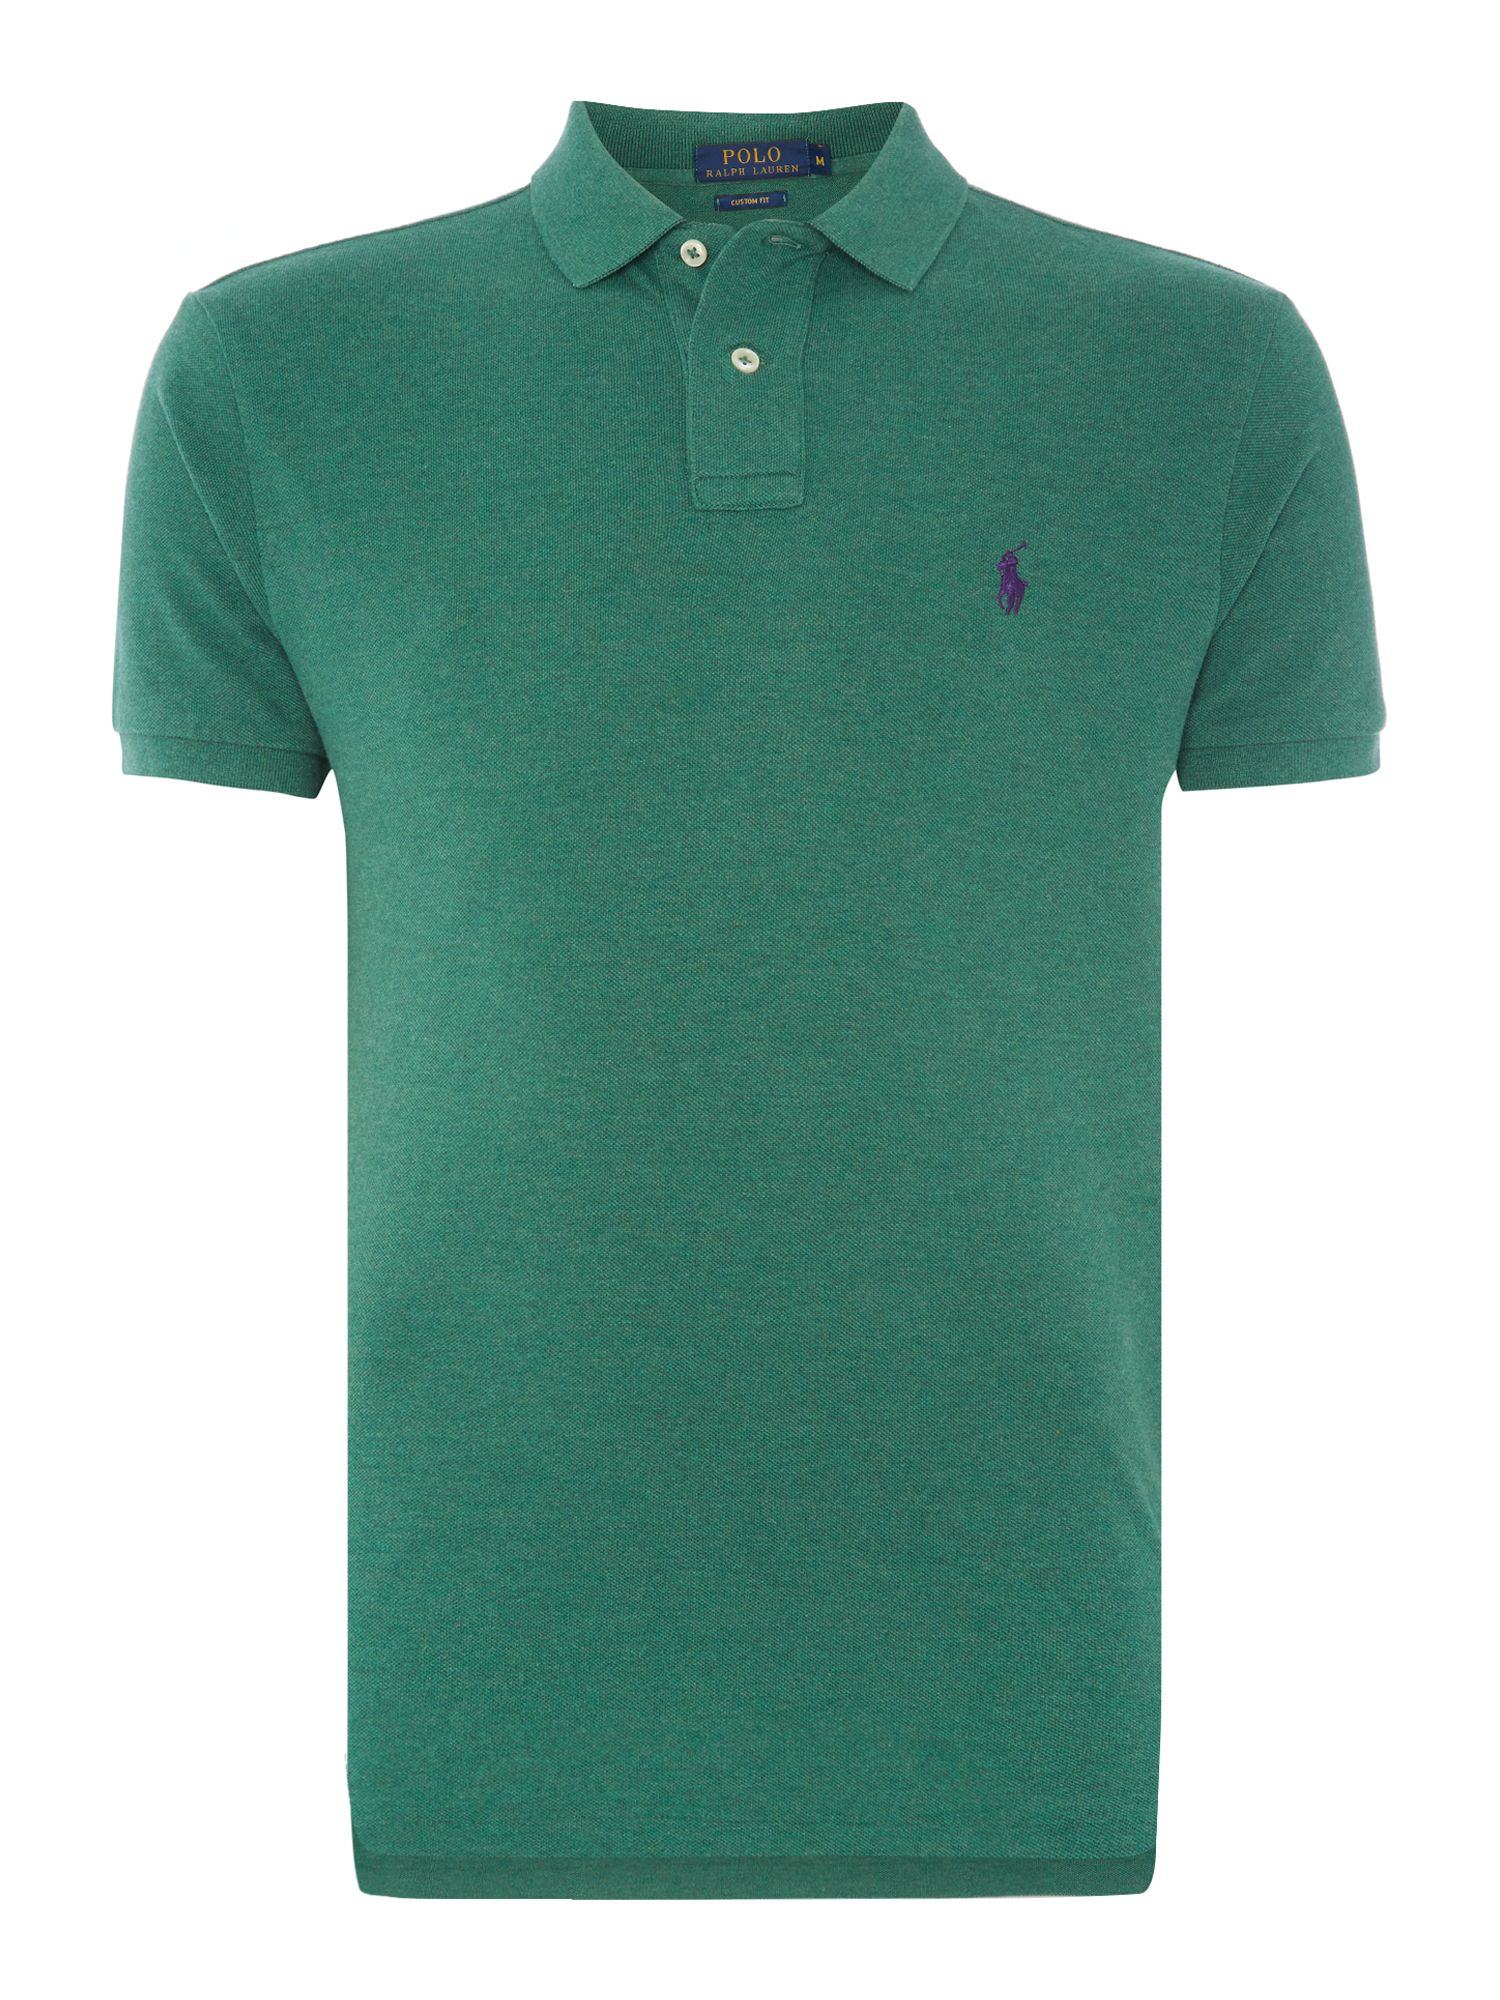 Men\u0026#39;s Polo Ralph Lauren Custom-Fit Short-Sleeve Polo Shirt